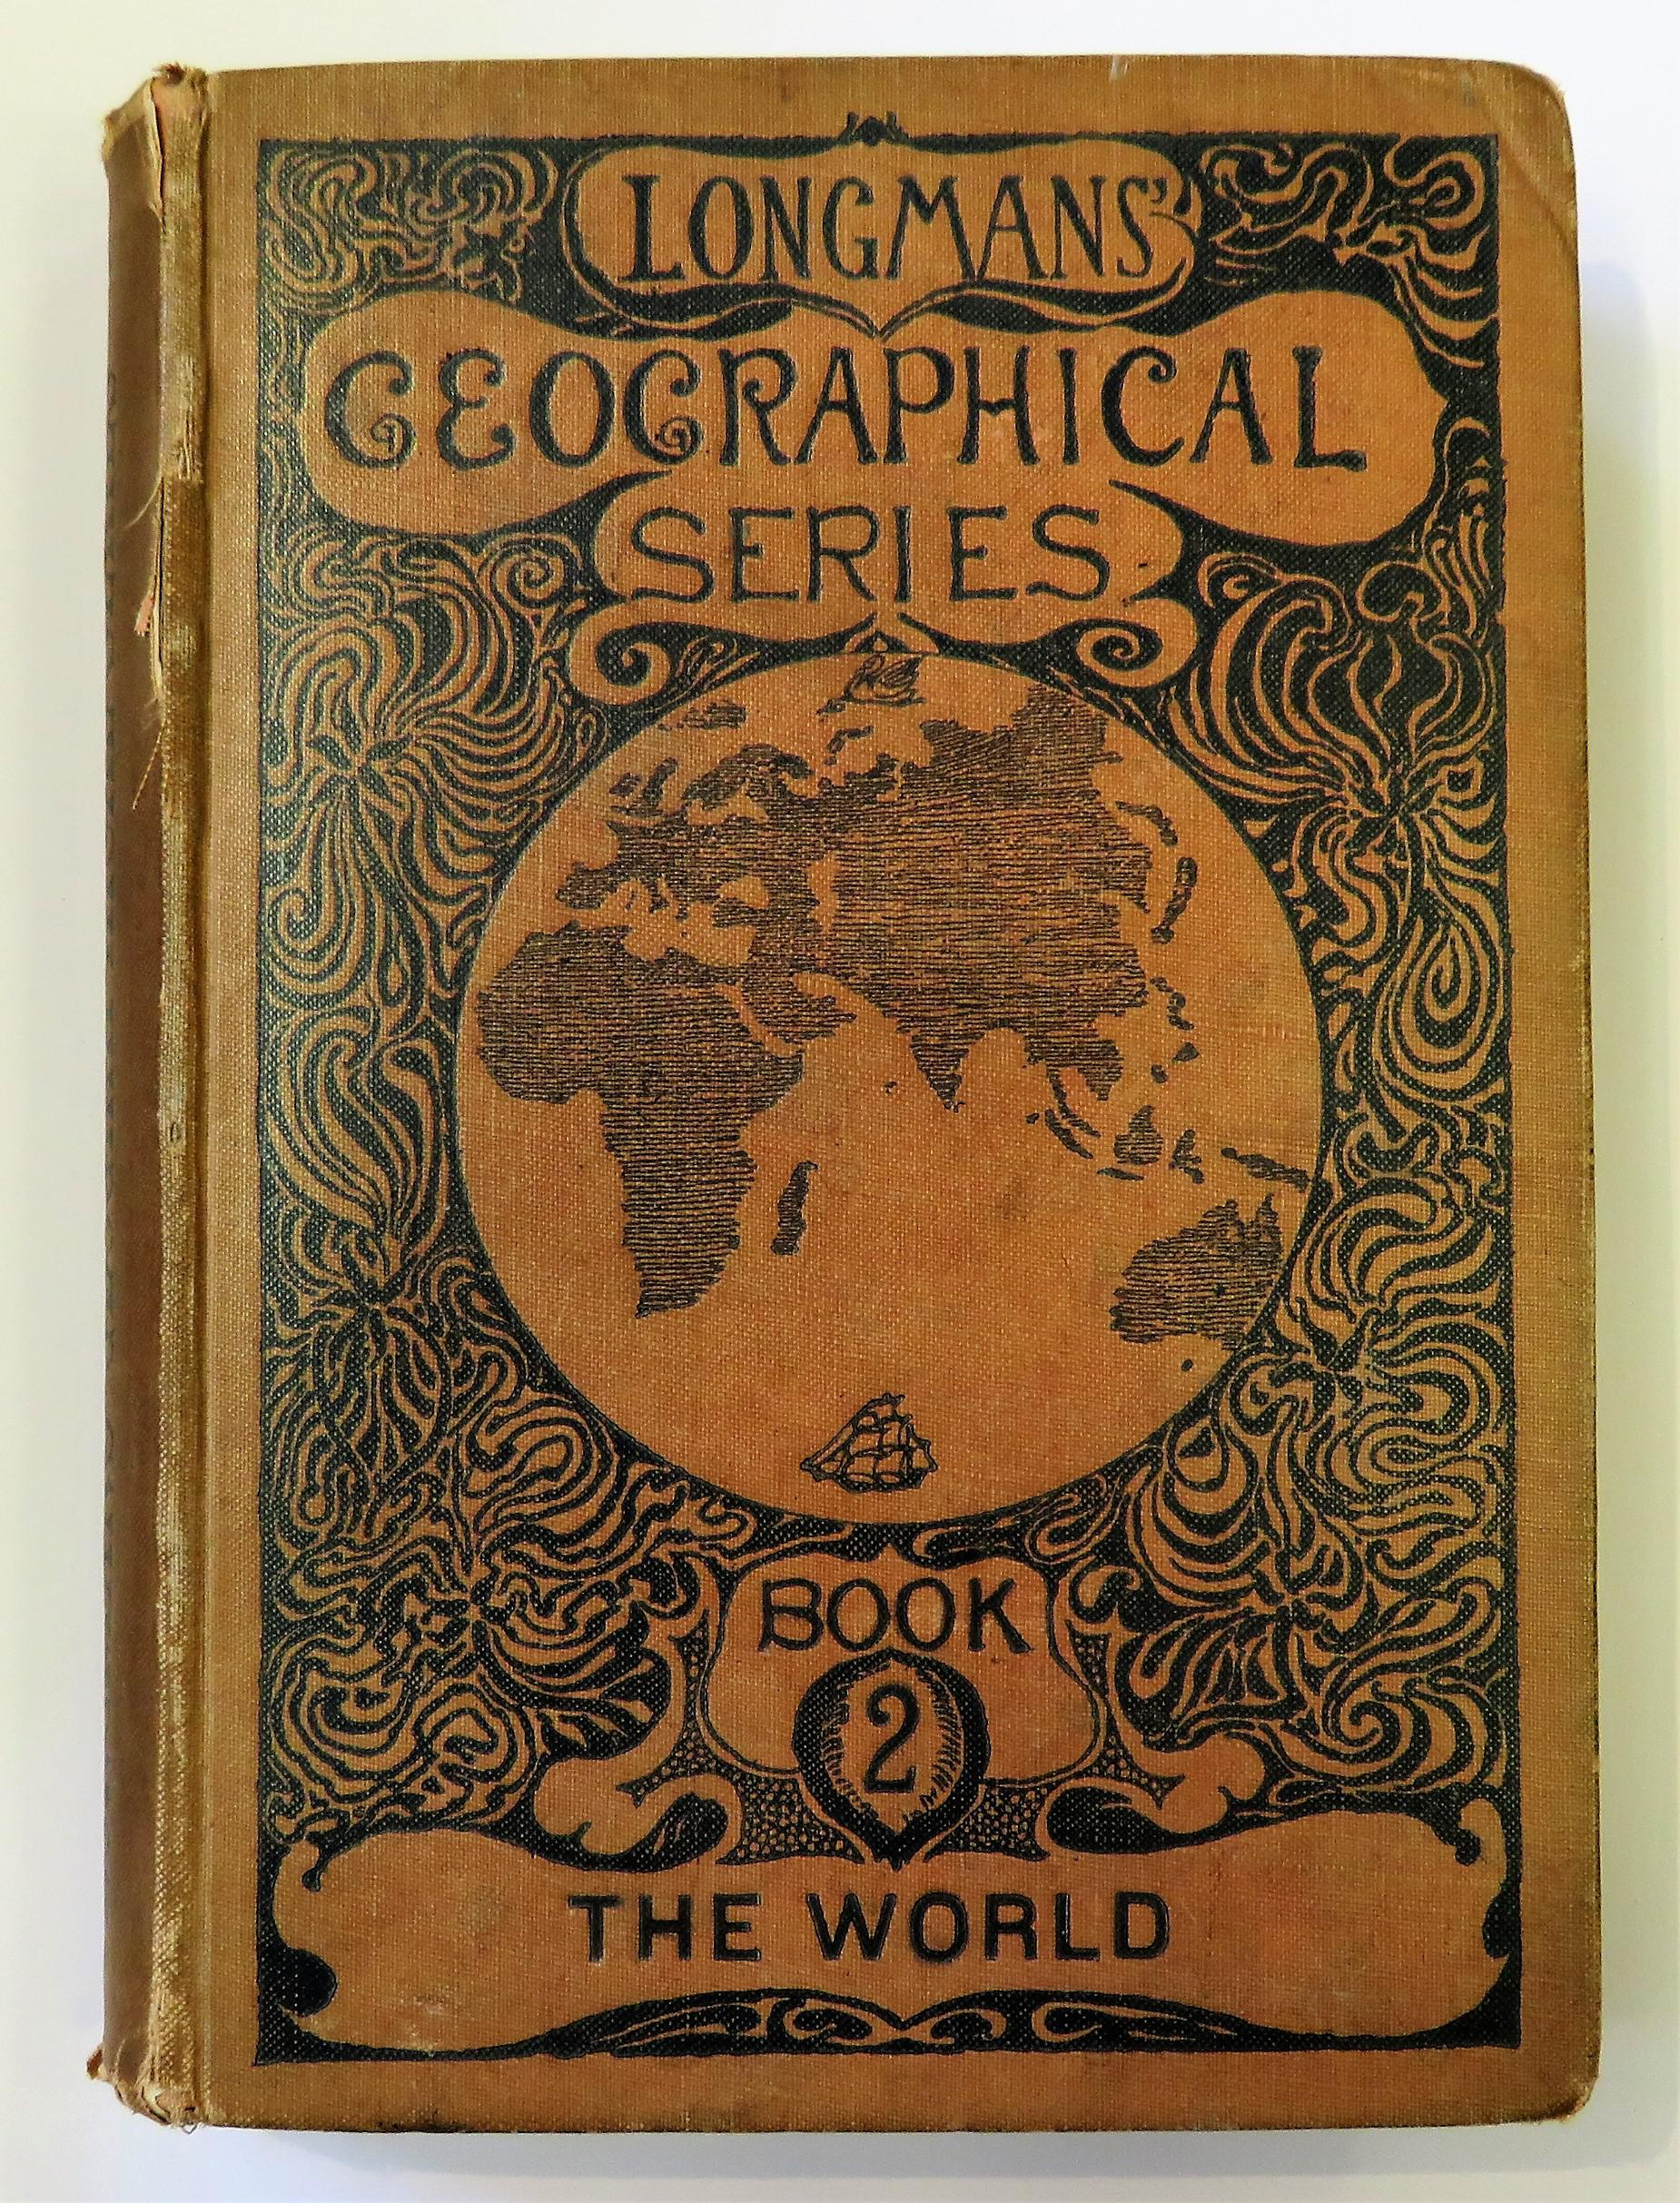 Longman's Geographical Series Book II The World